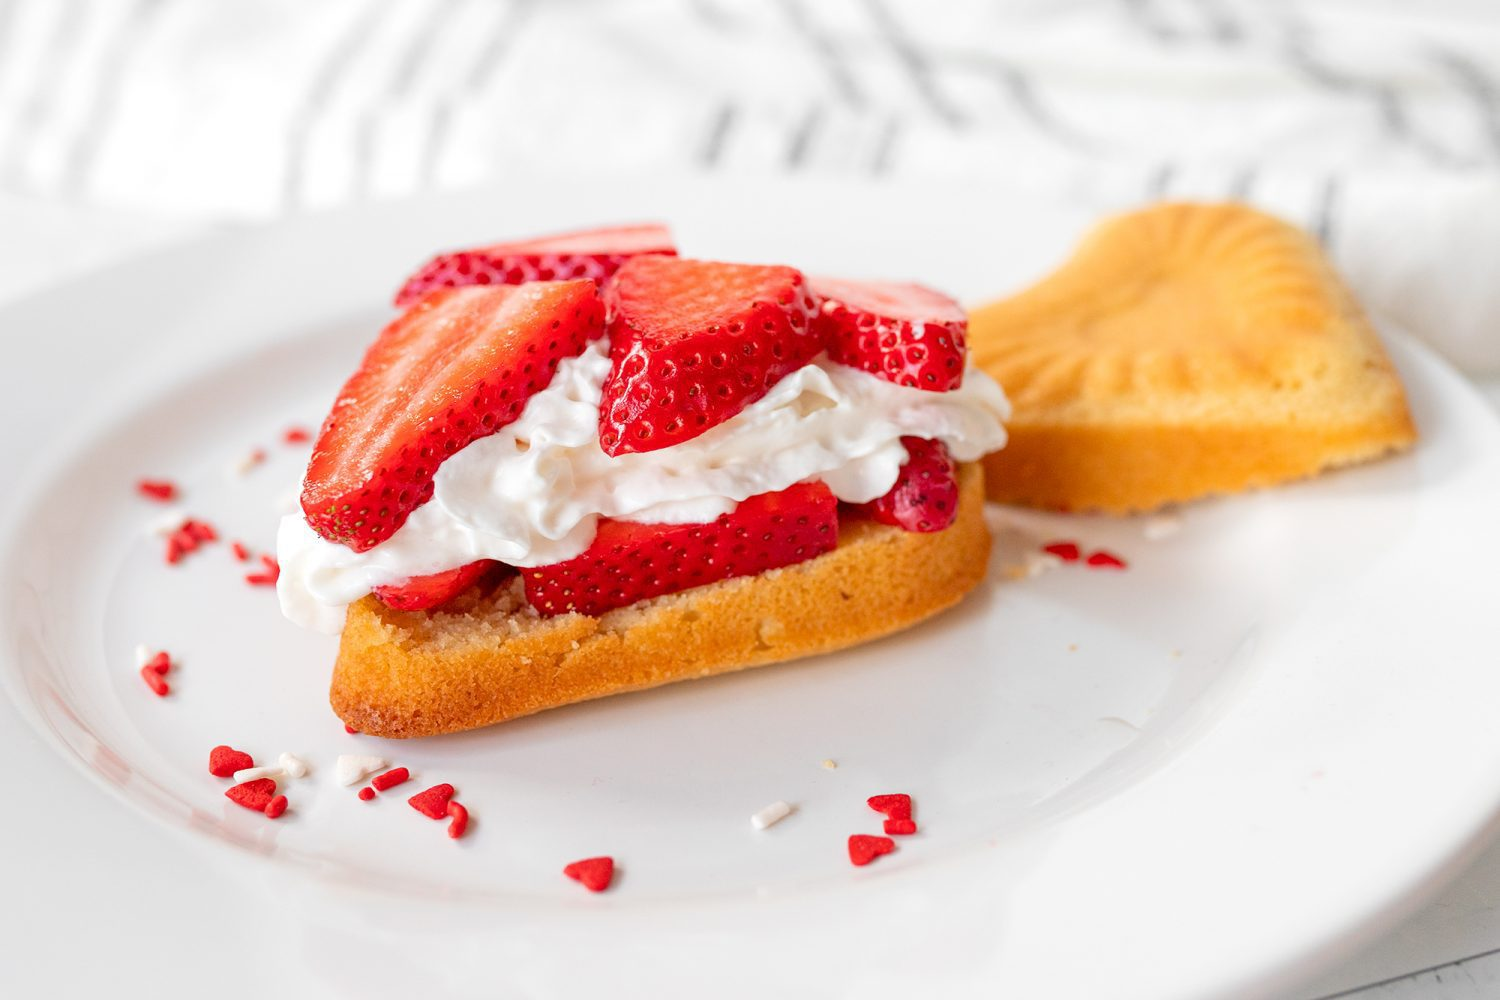 pound cake topped with fresh strawberries and whipped cream